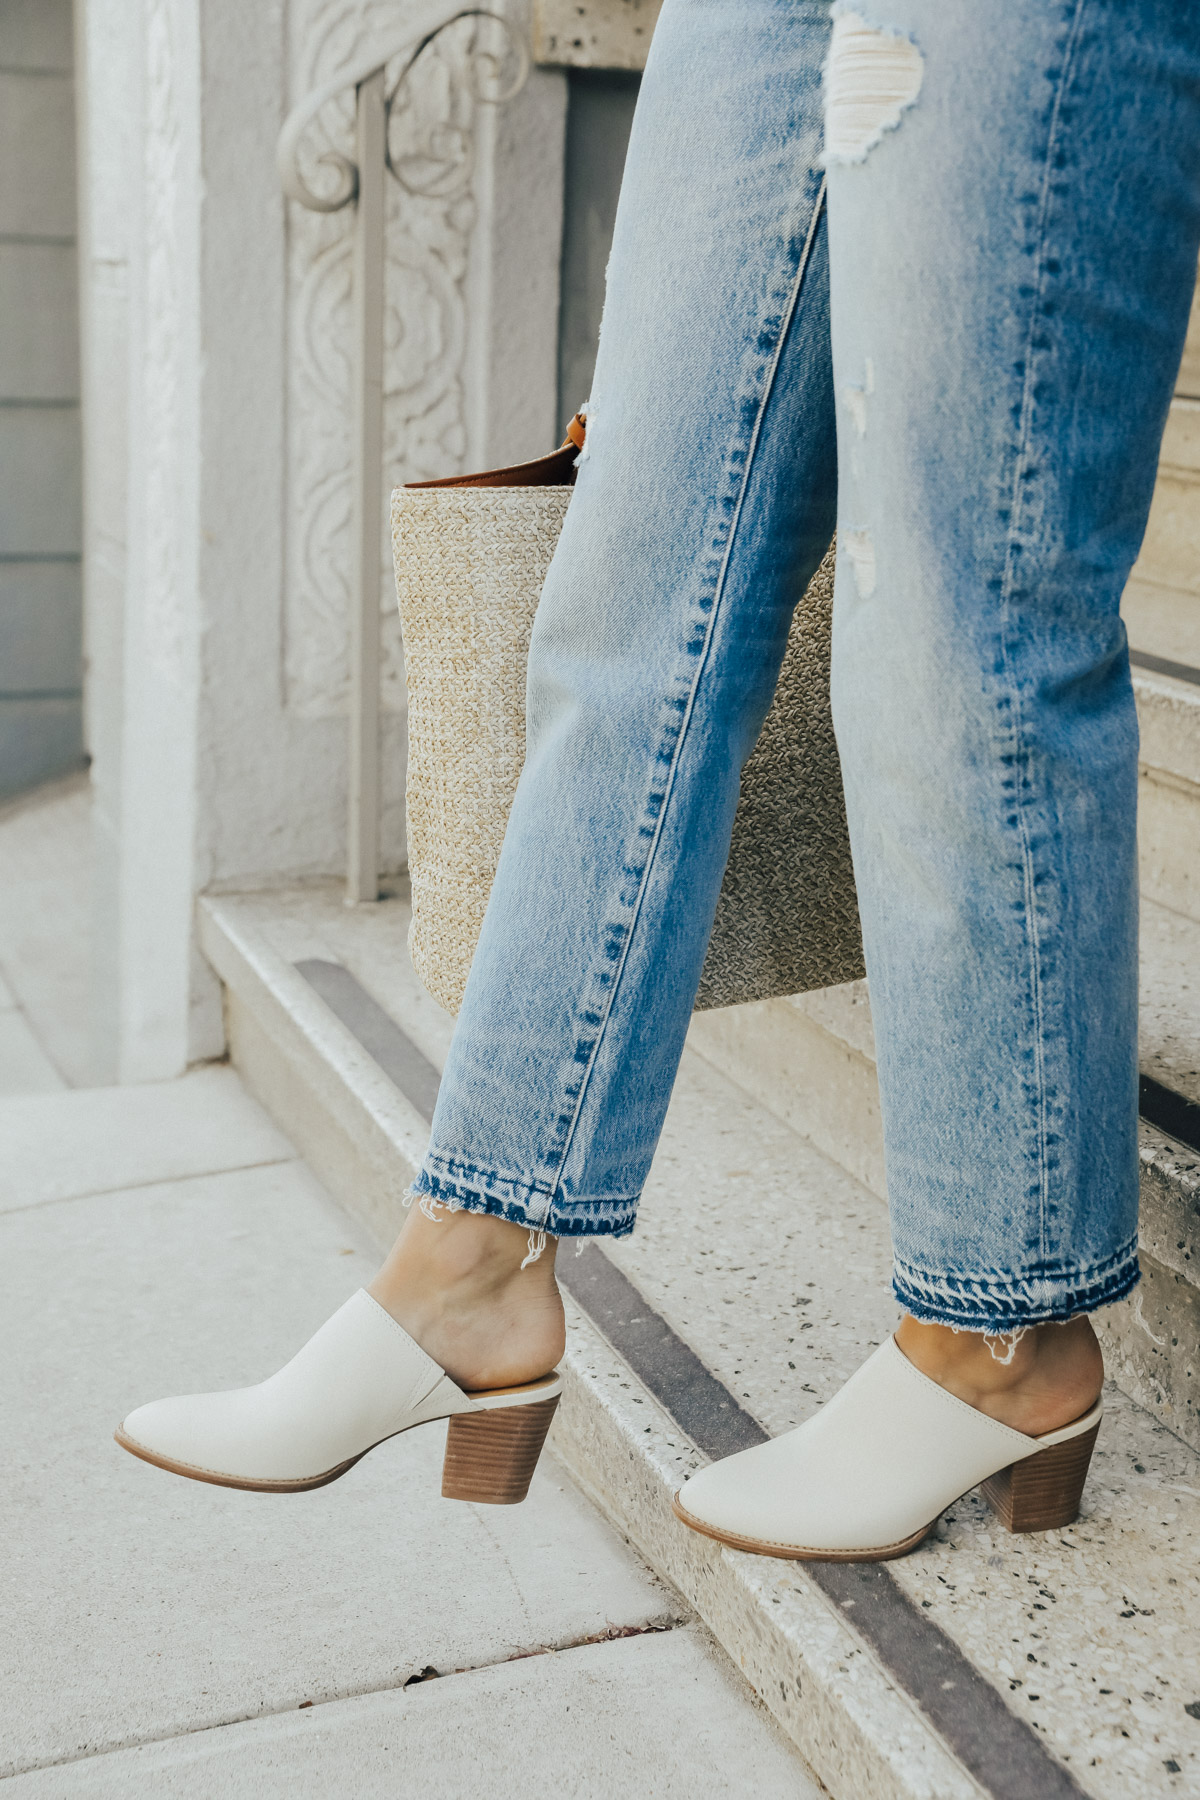 madewell mules and vintage jeans